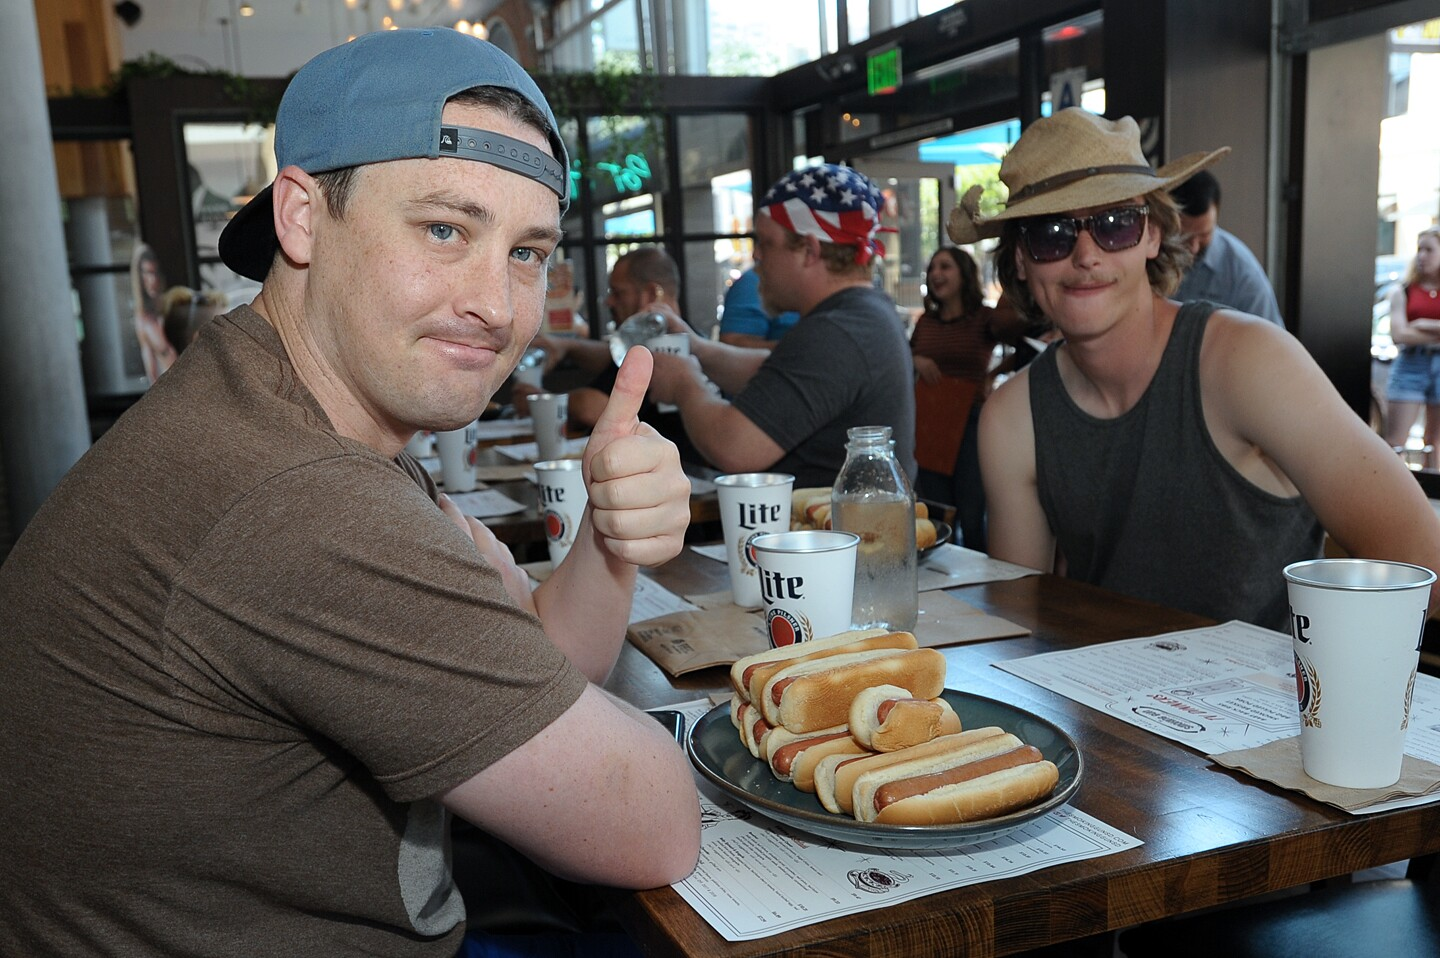 San Diegans celebrated America's birthday in the most American way: with a good old-fashioned hot dog eating contest at The Smoking Gun on Thursday, July 4, 2019.